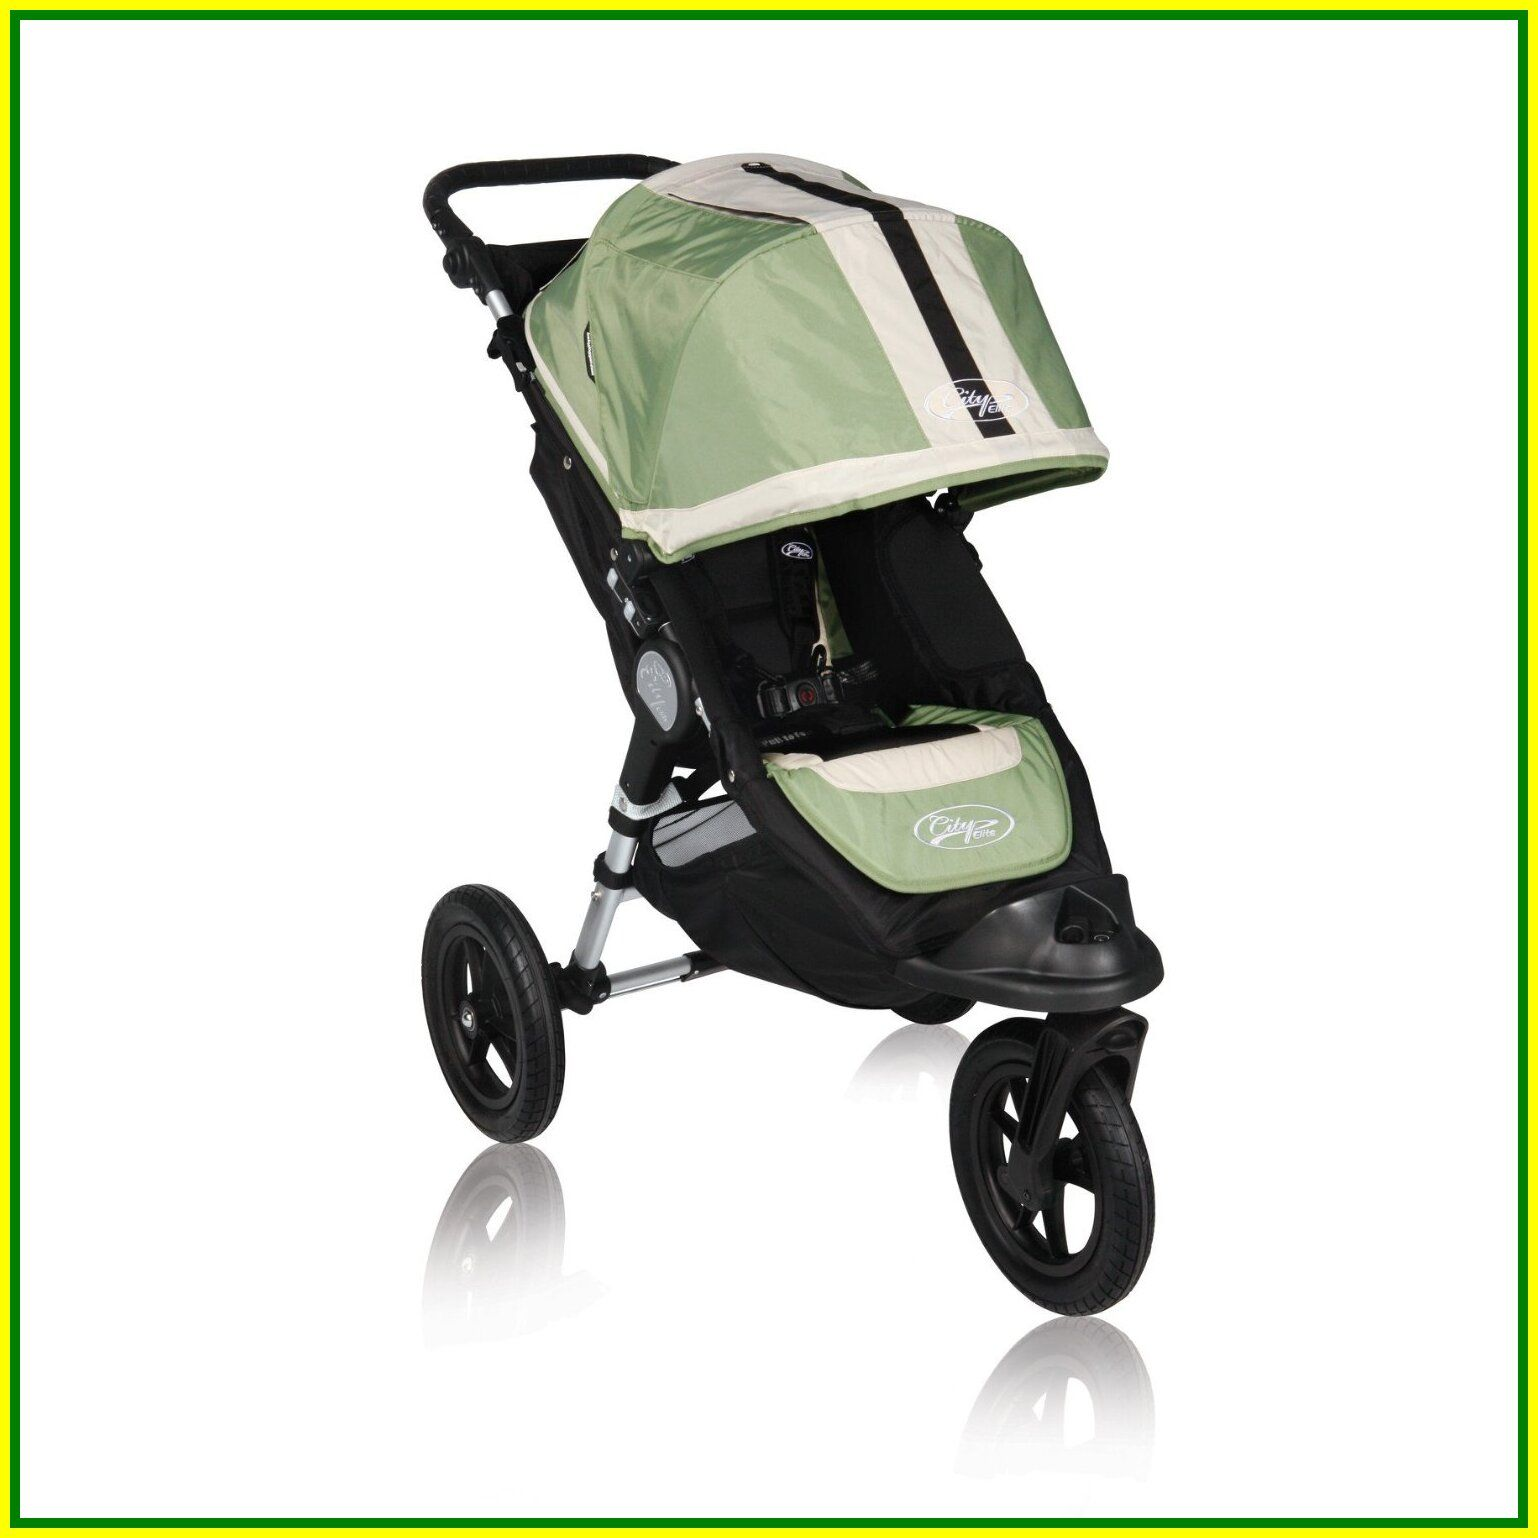 127 reference of stroller Newborn jogging stroller in 2020